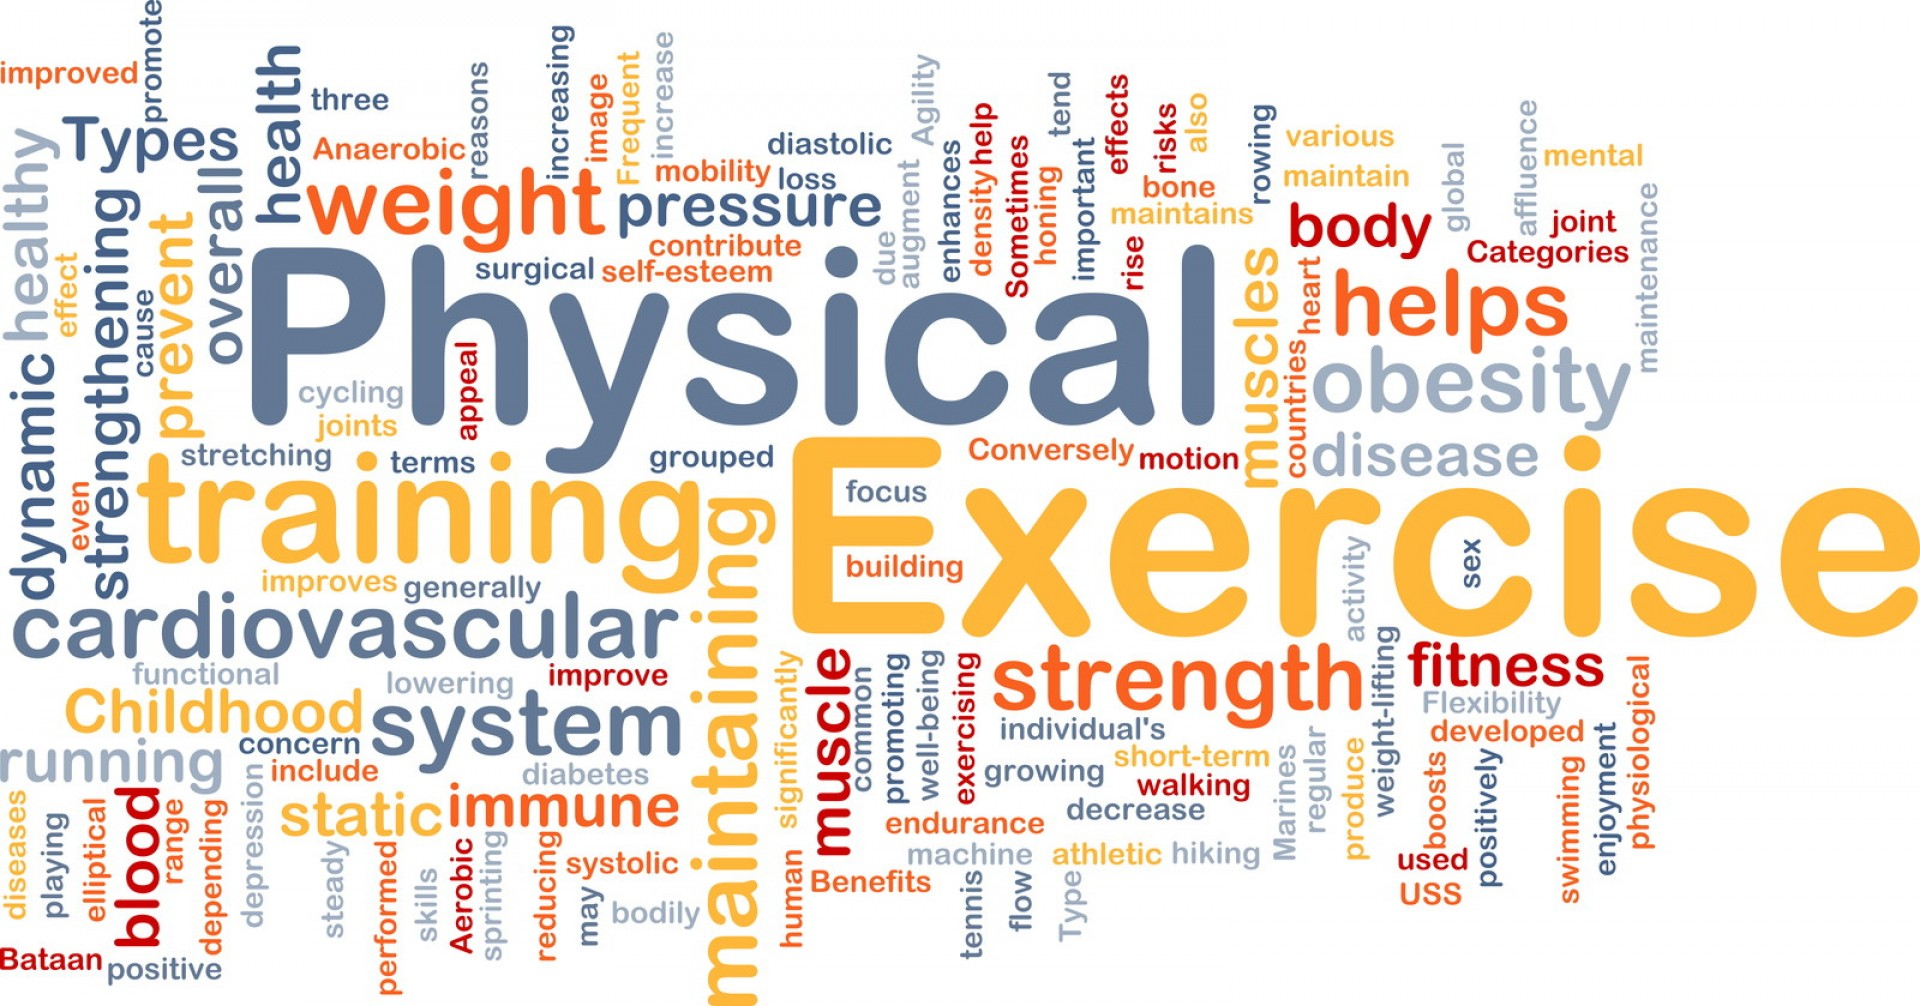 011 Essay Example Call Doctor Benefits Of Physical Fitness On Regular Impressive Exercise In 200 Words For Class 4 Hindi 1920